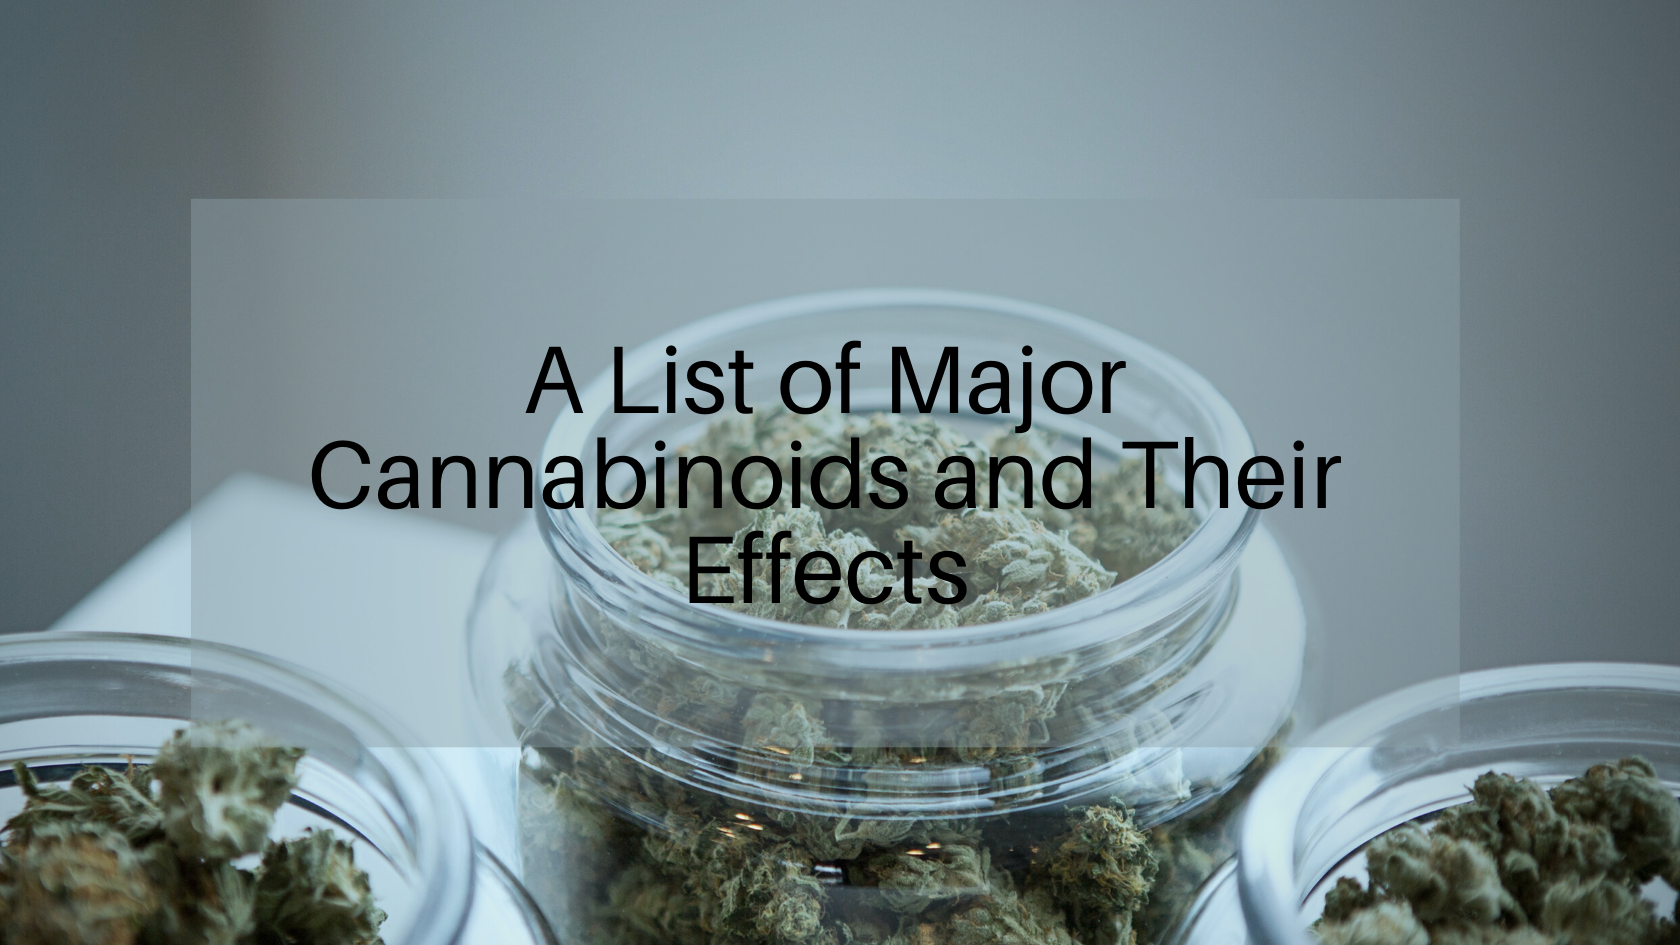 A List of Major Cannabinoids and Their Effects